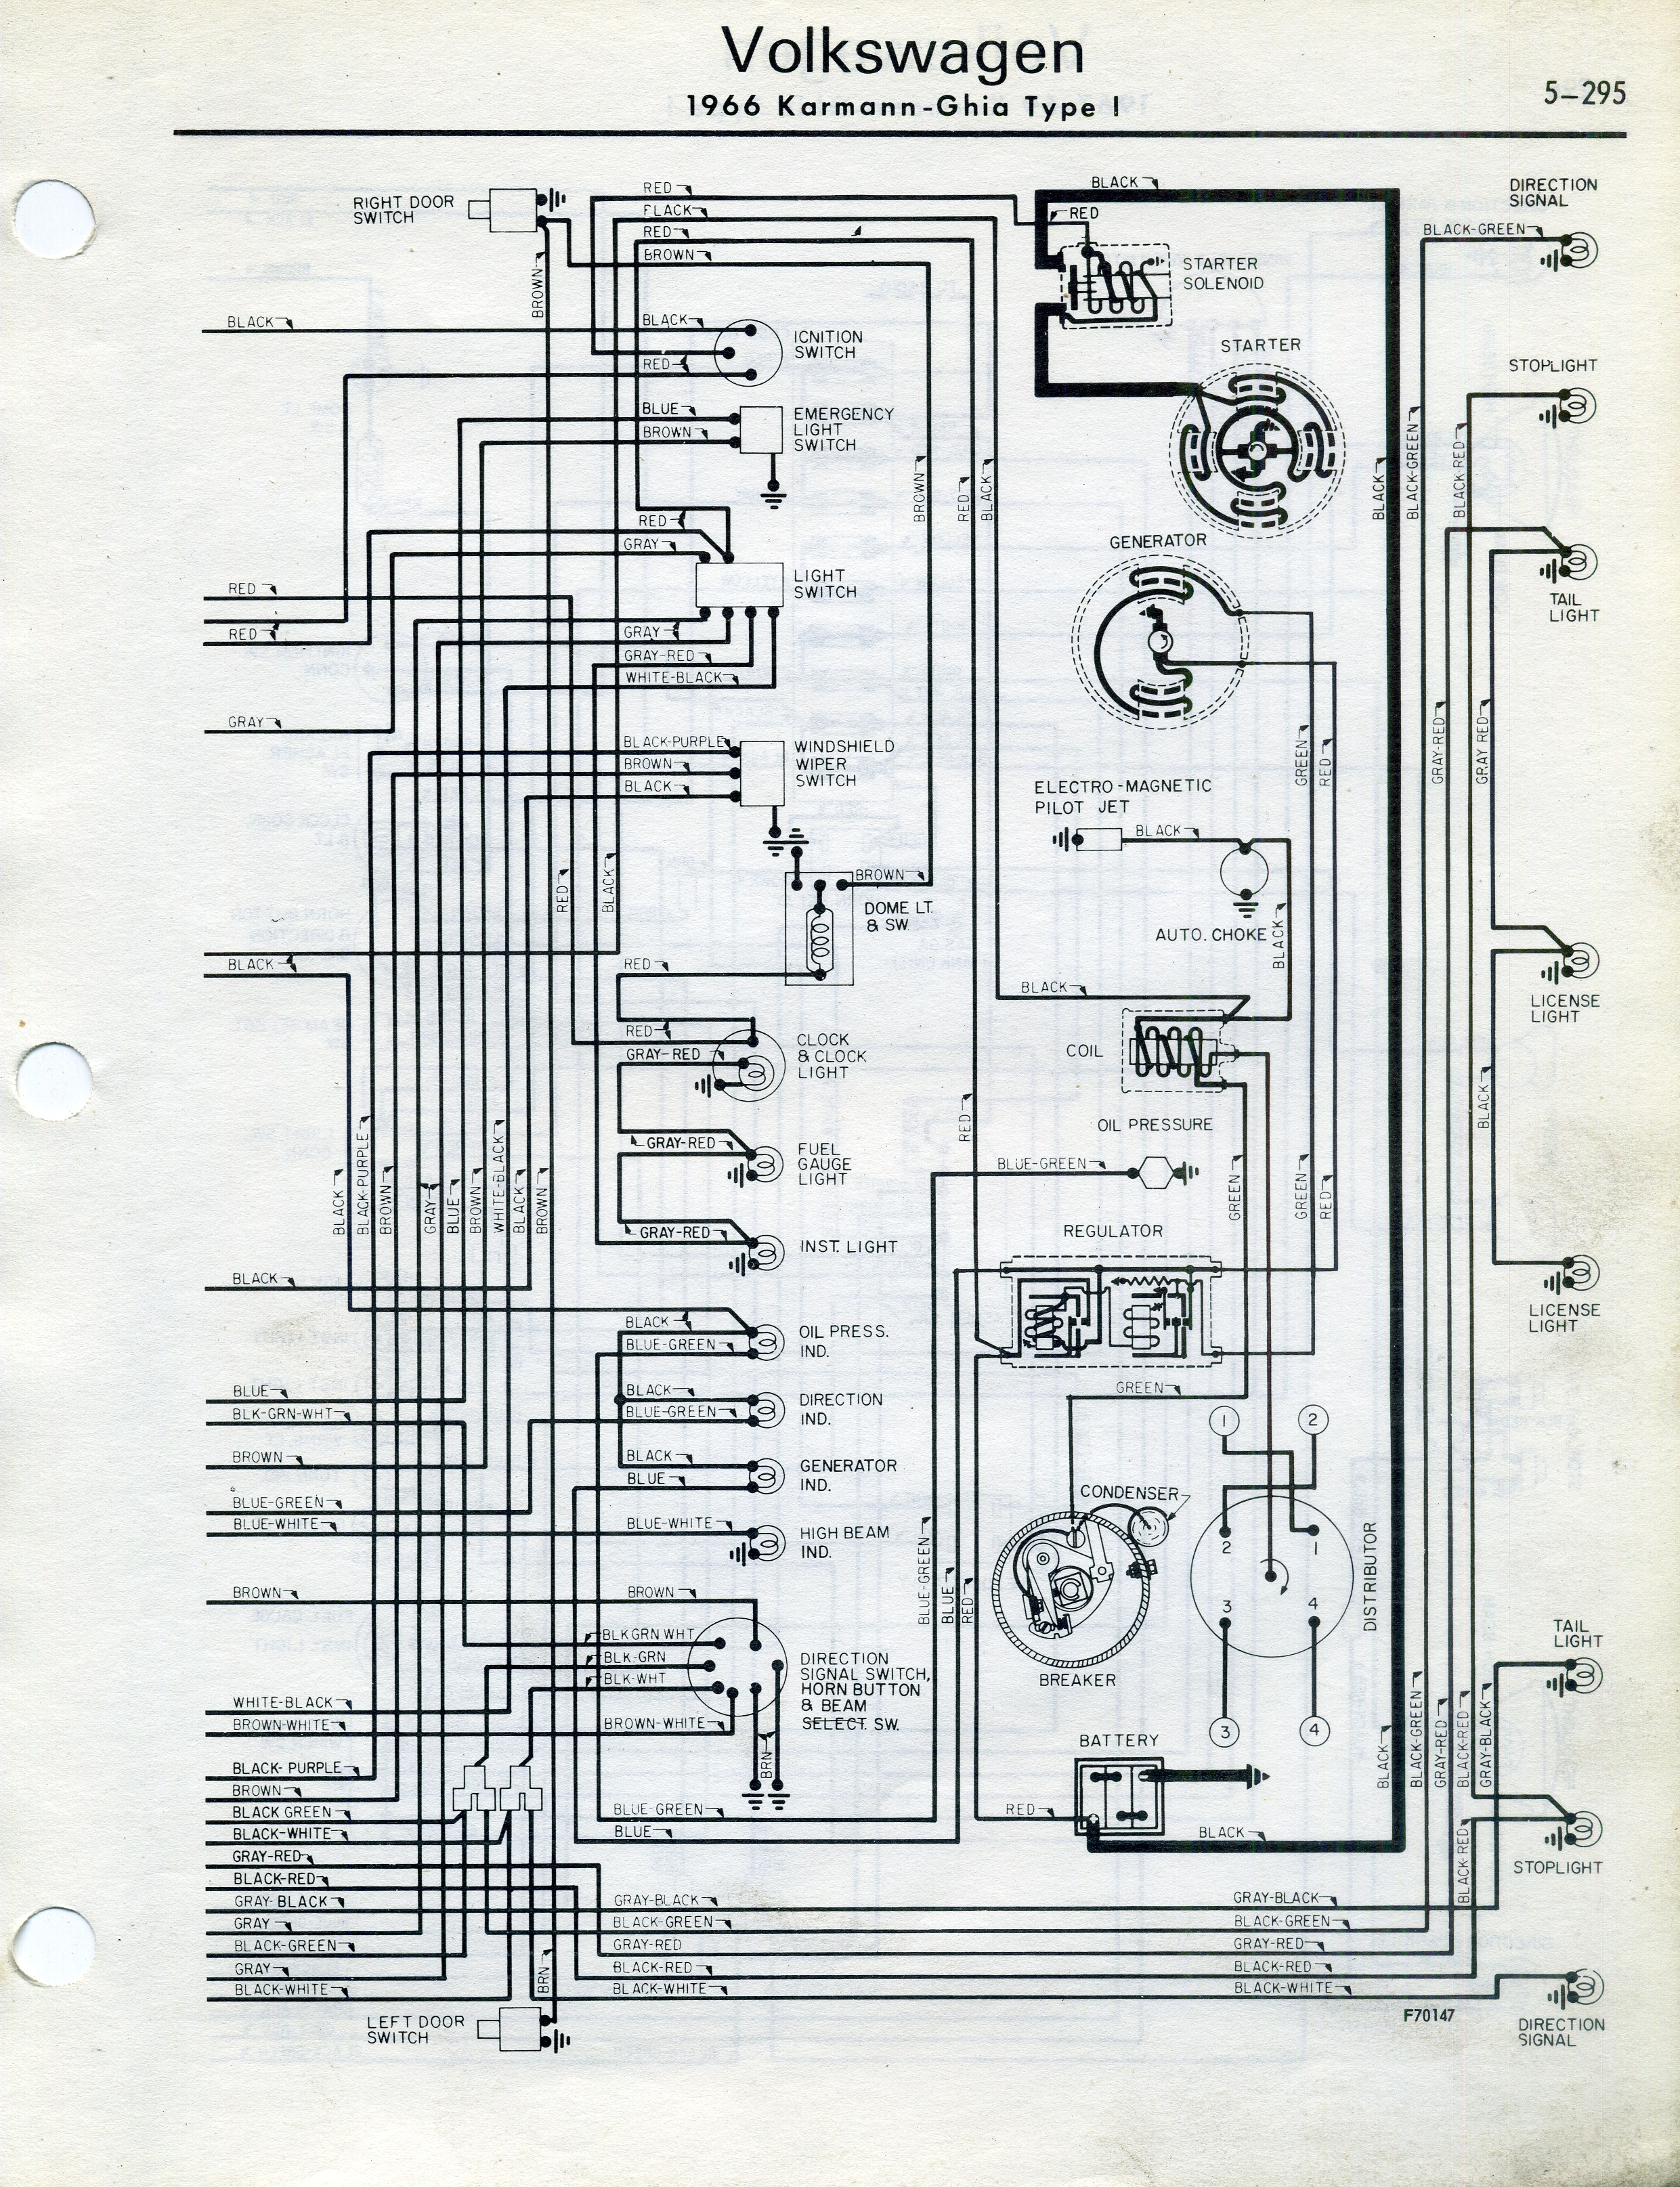 Exelent Thermo King Alternator Wiring Diagram Sketch - Electrical ...